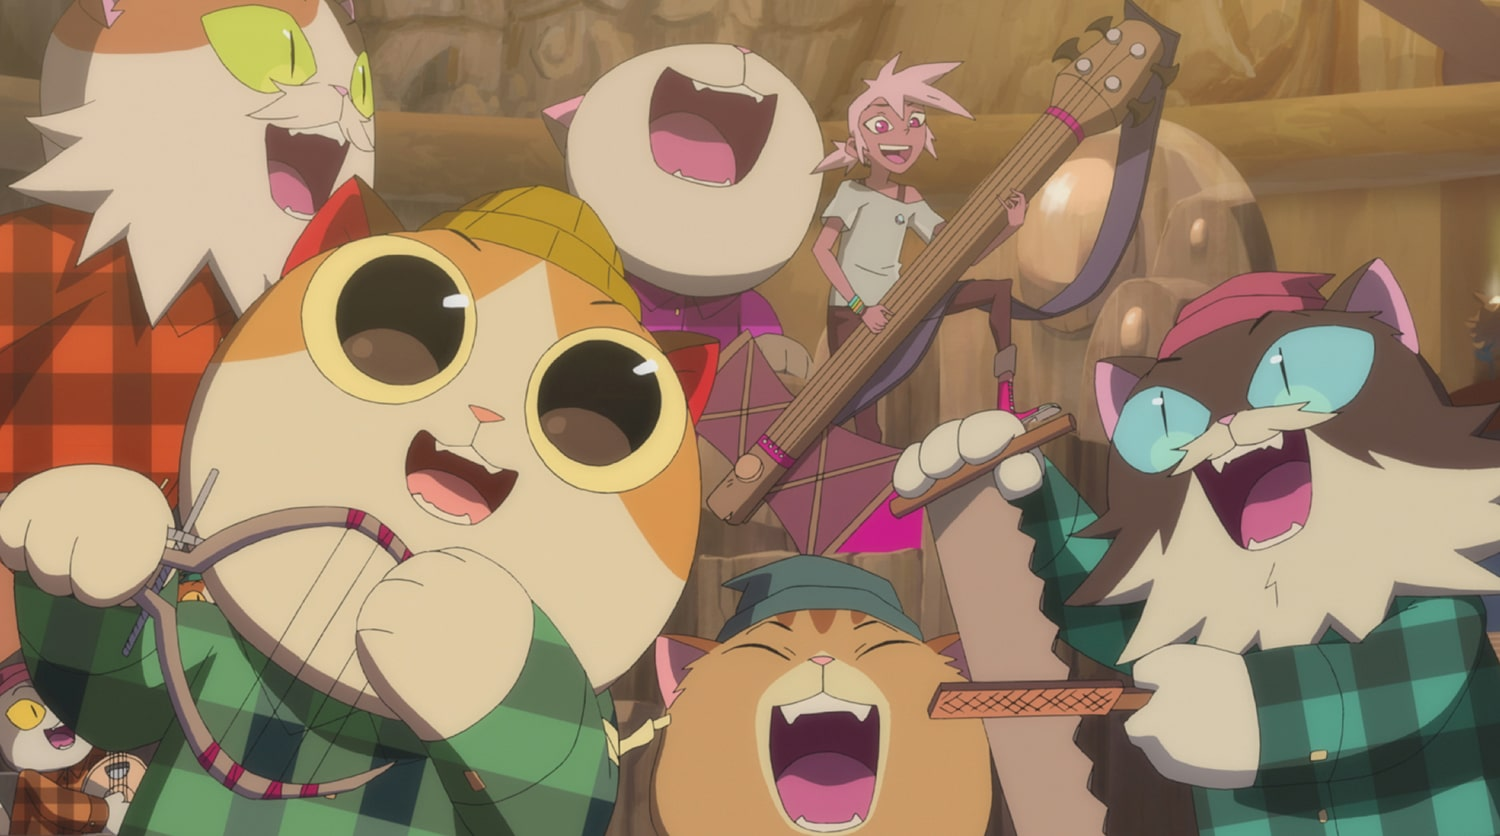 Kipo TIMBERCATS SING. DreamWorks Kipo and The Age of Wonderbeasts will return to Netflix June 12, for a second season filled with adventures through the whimsical, weird post-apocalyptic world of Las Vistas.